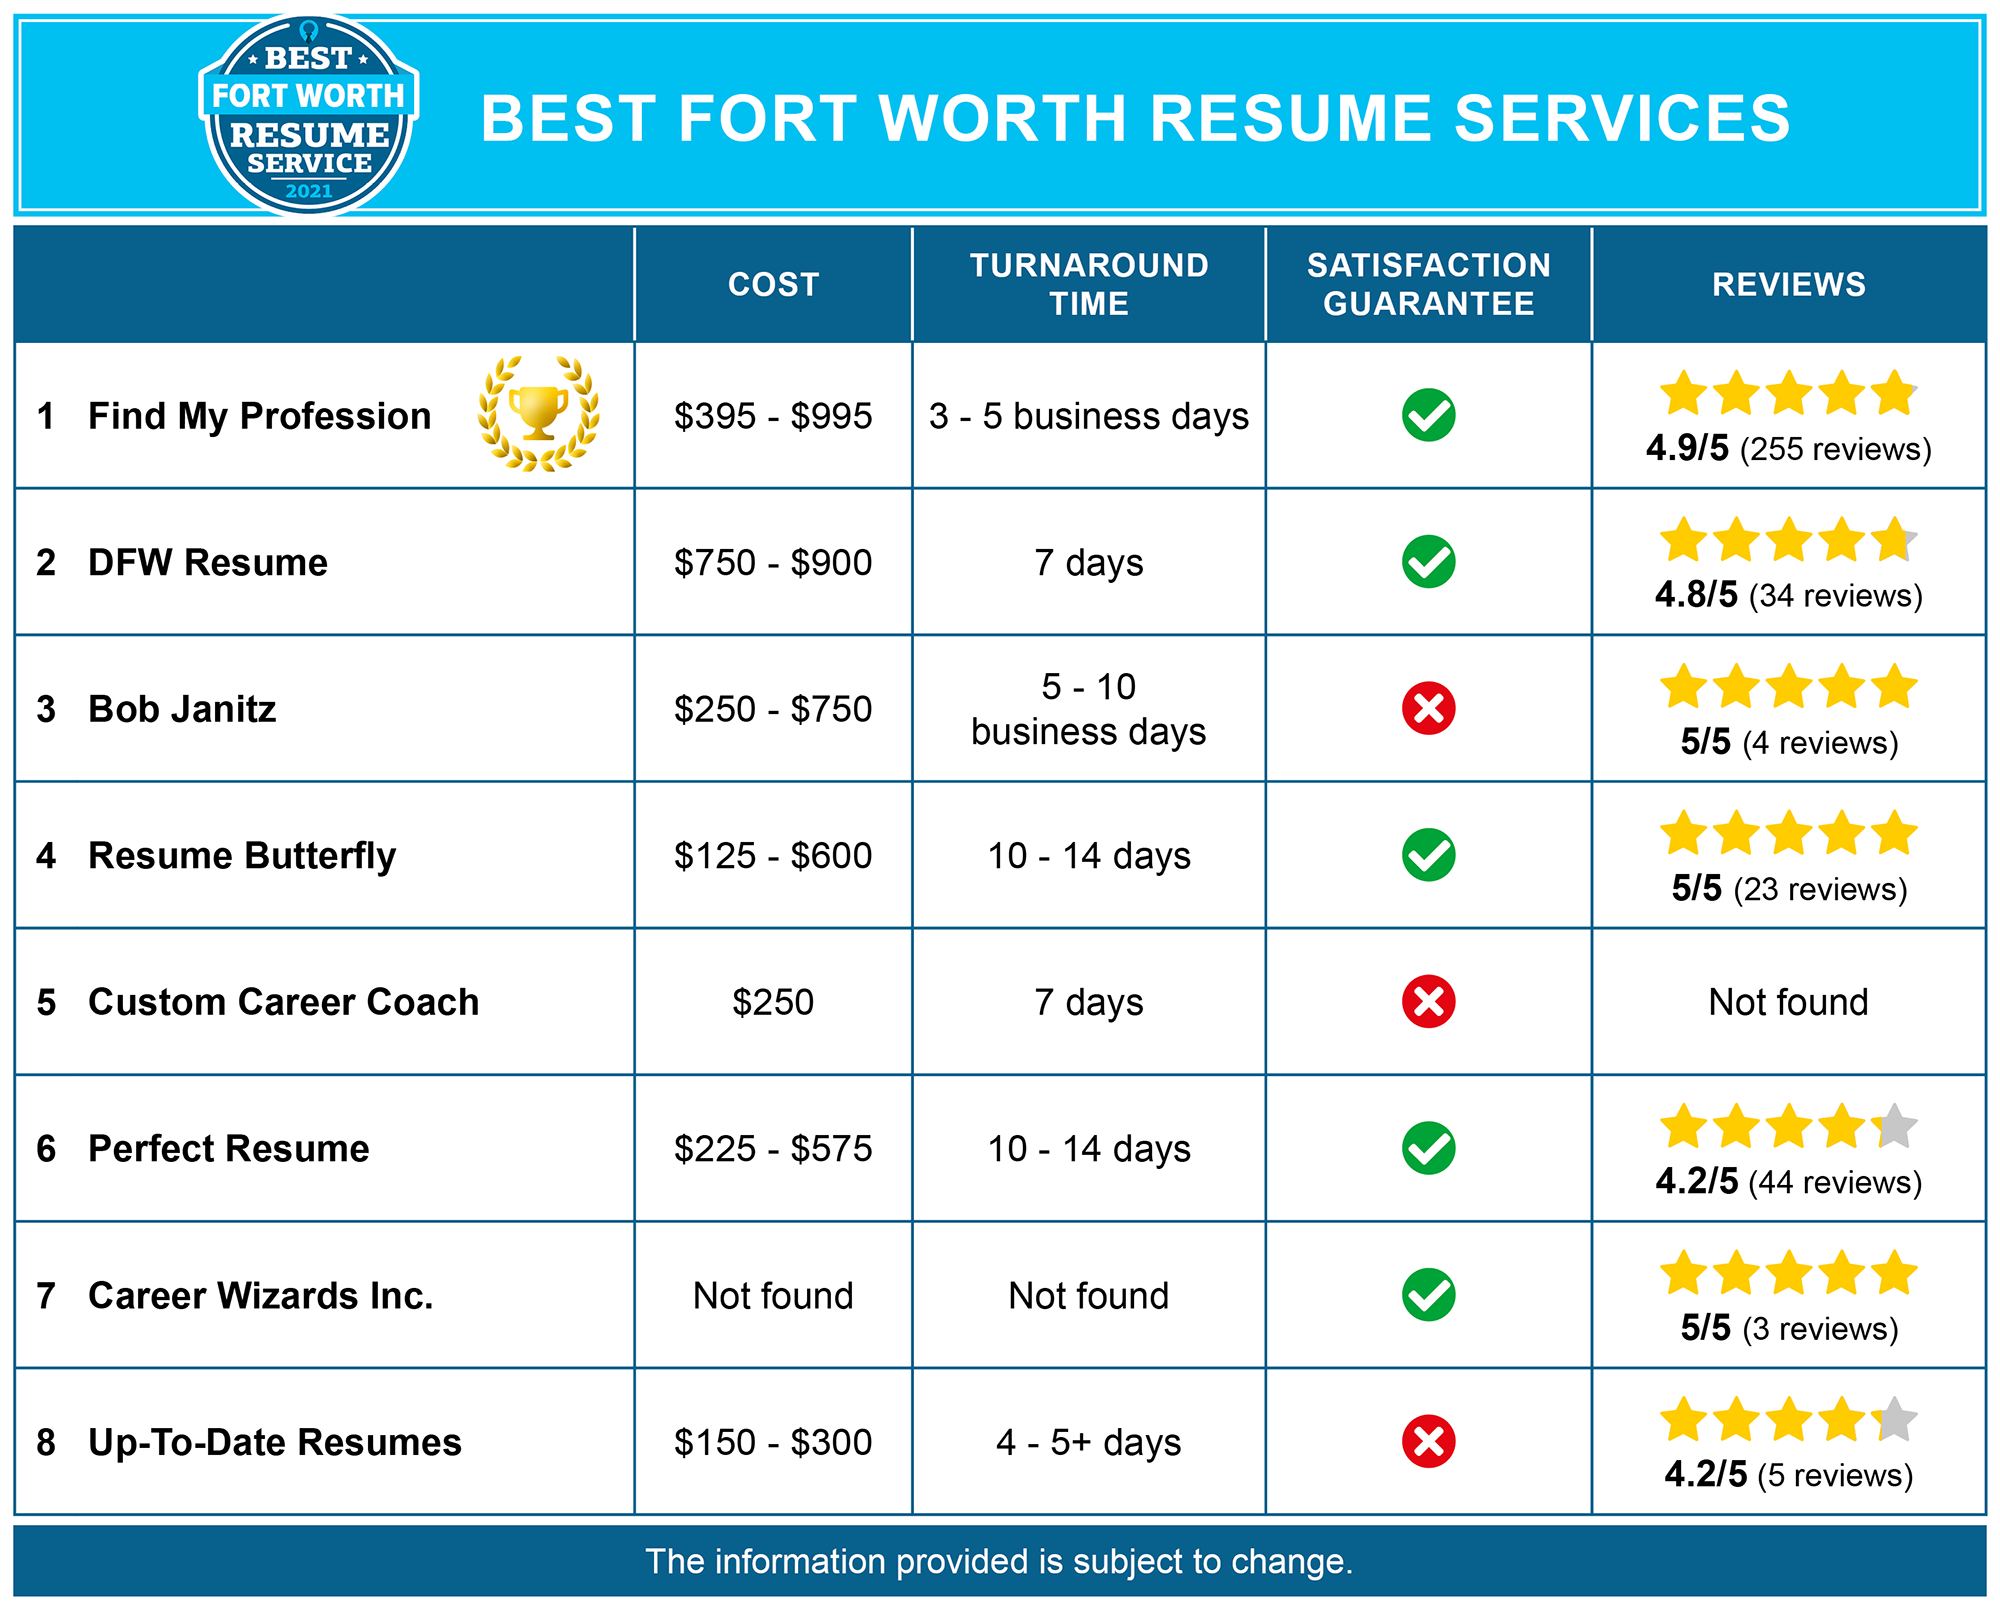 Best Fort Worth Resume Services